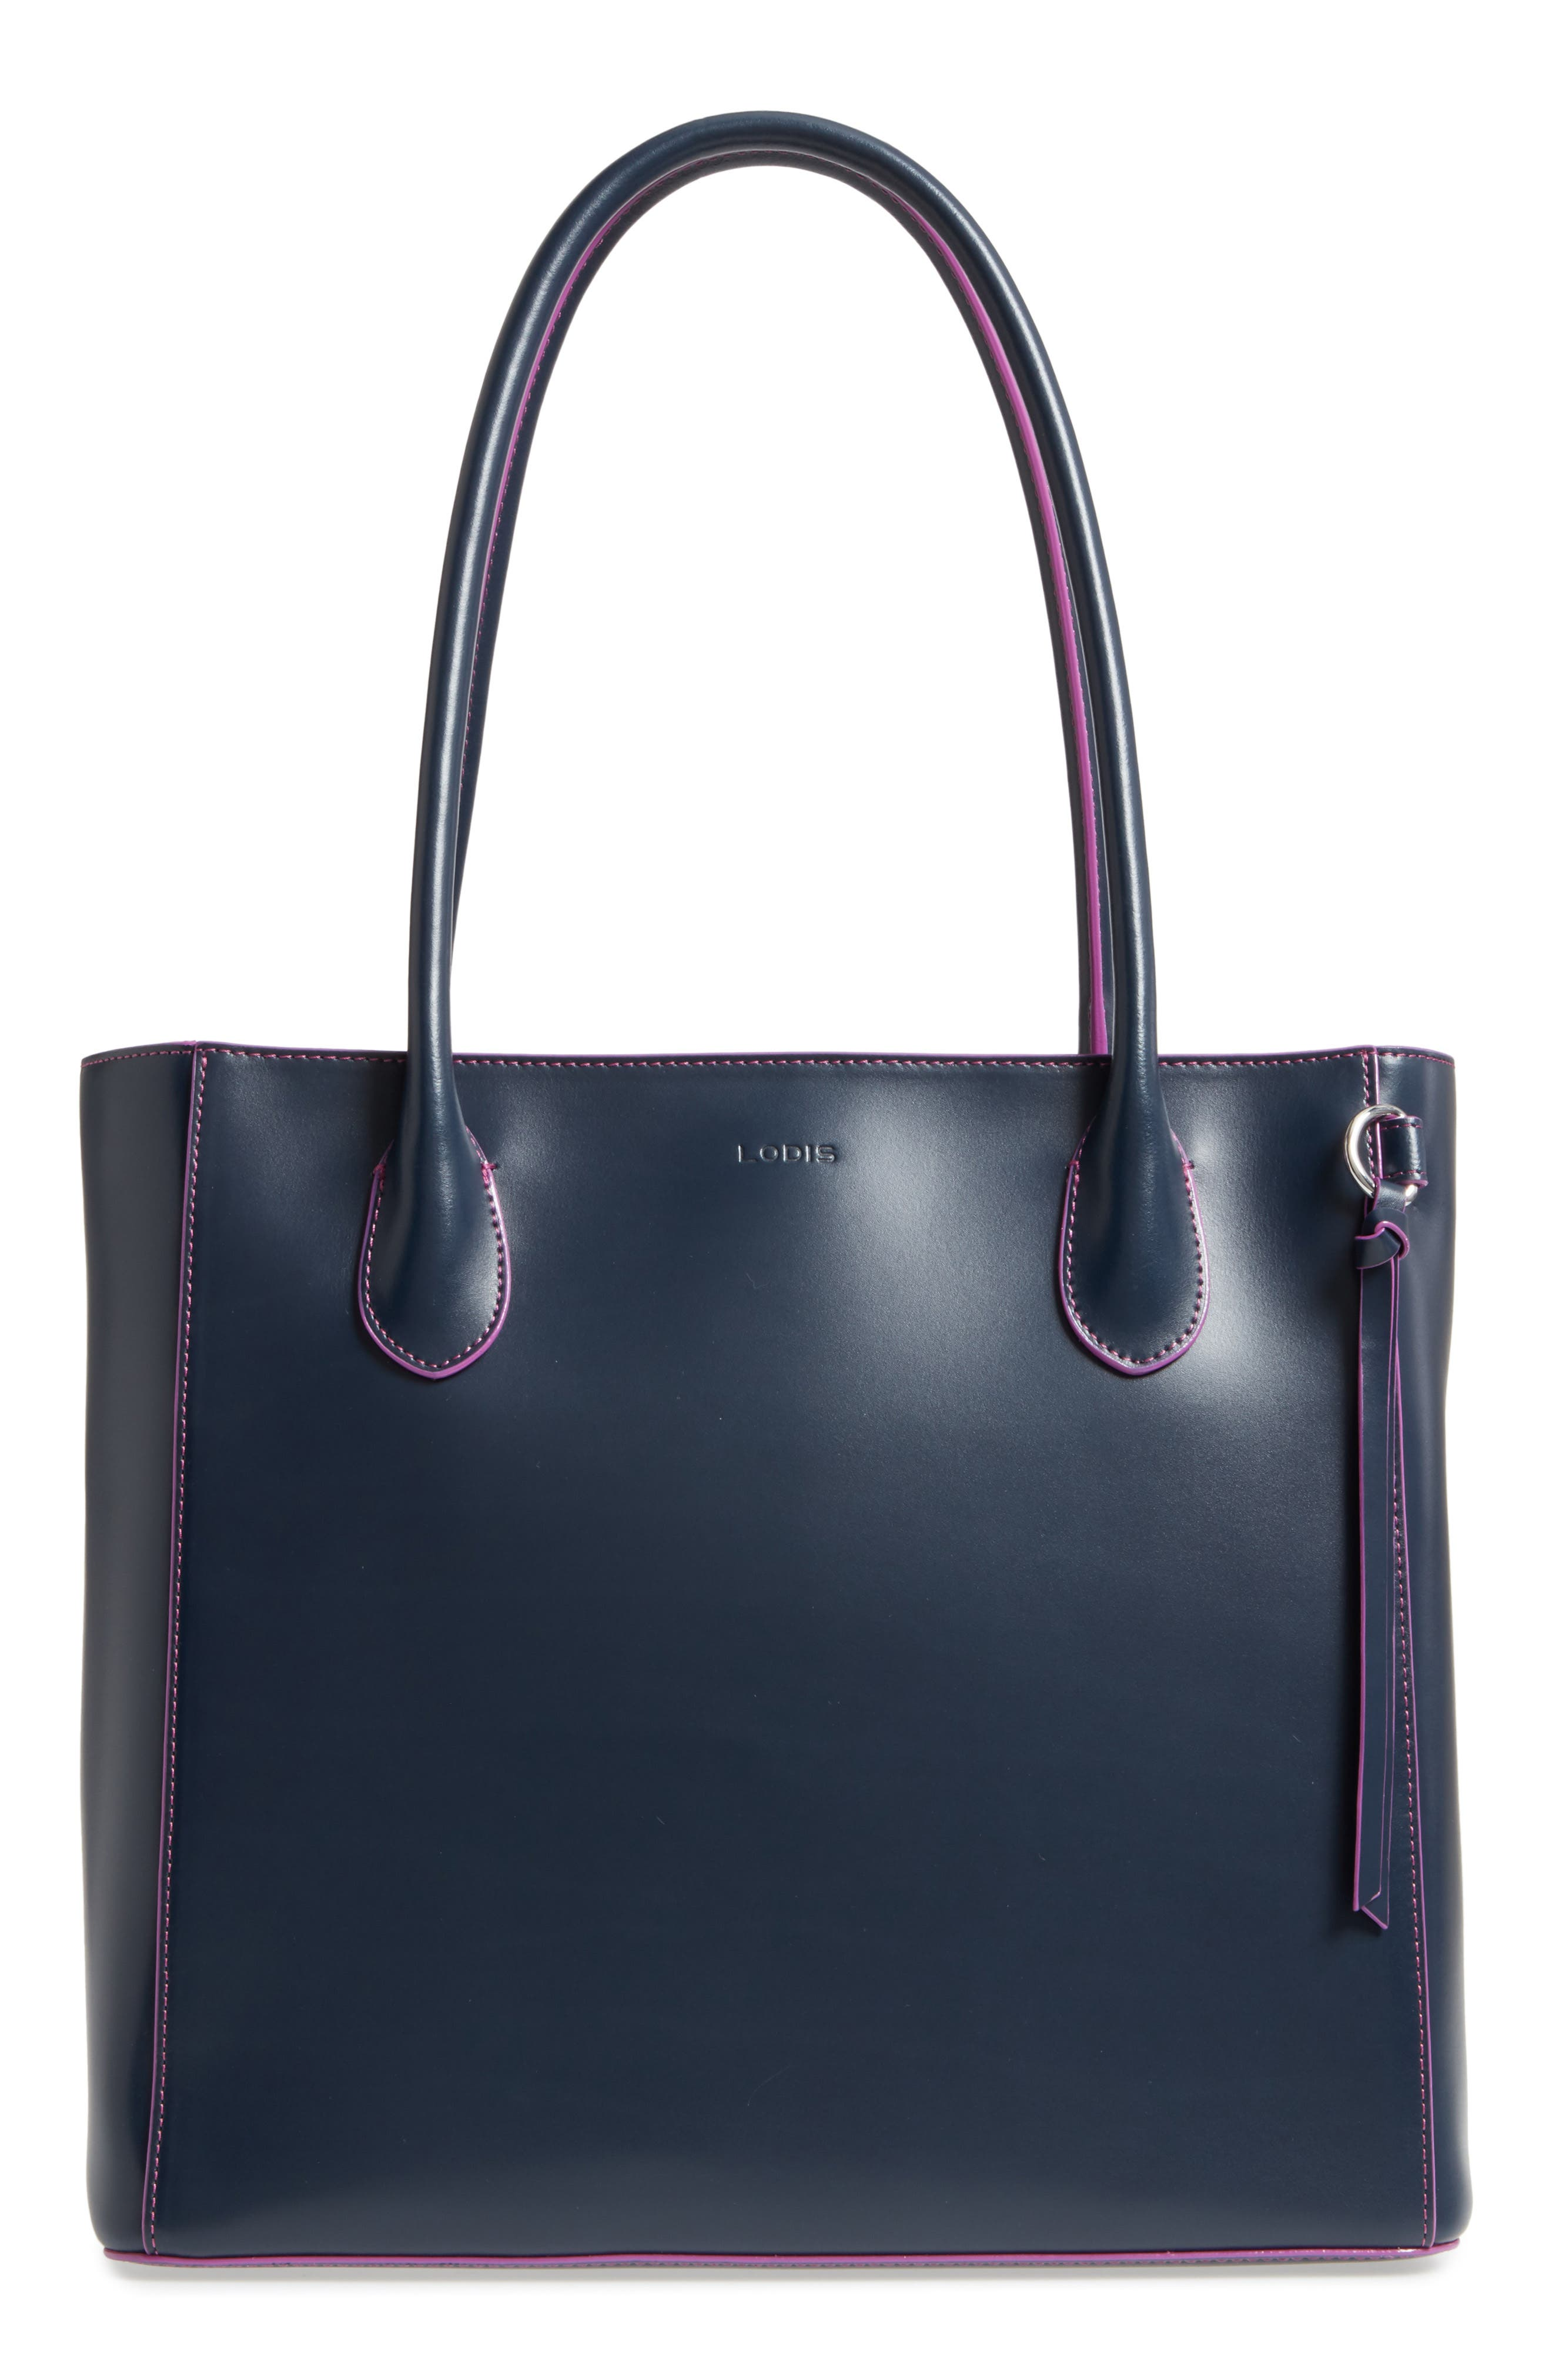 Cecily RFID Leather Tote,                             Main thumbnail 1, color,                             Navy/ Orchid